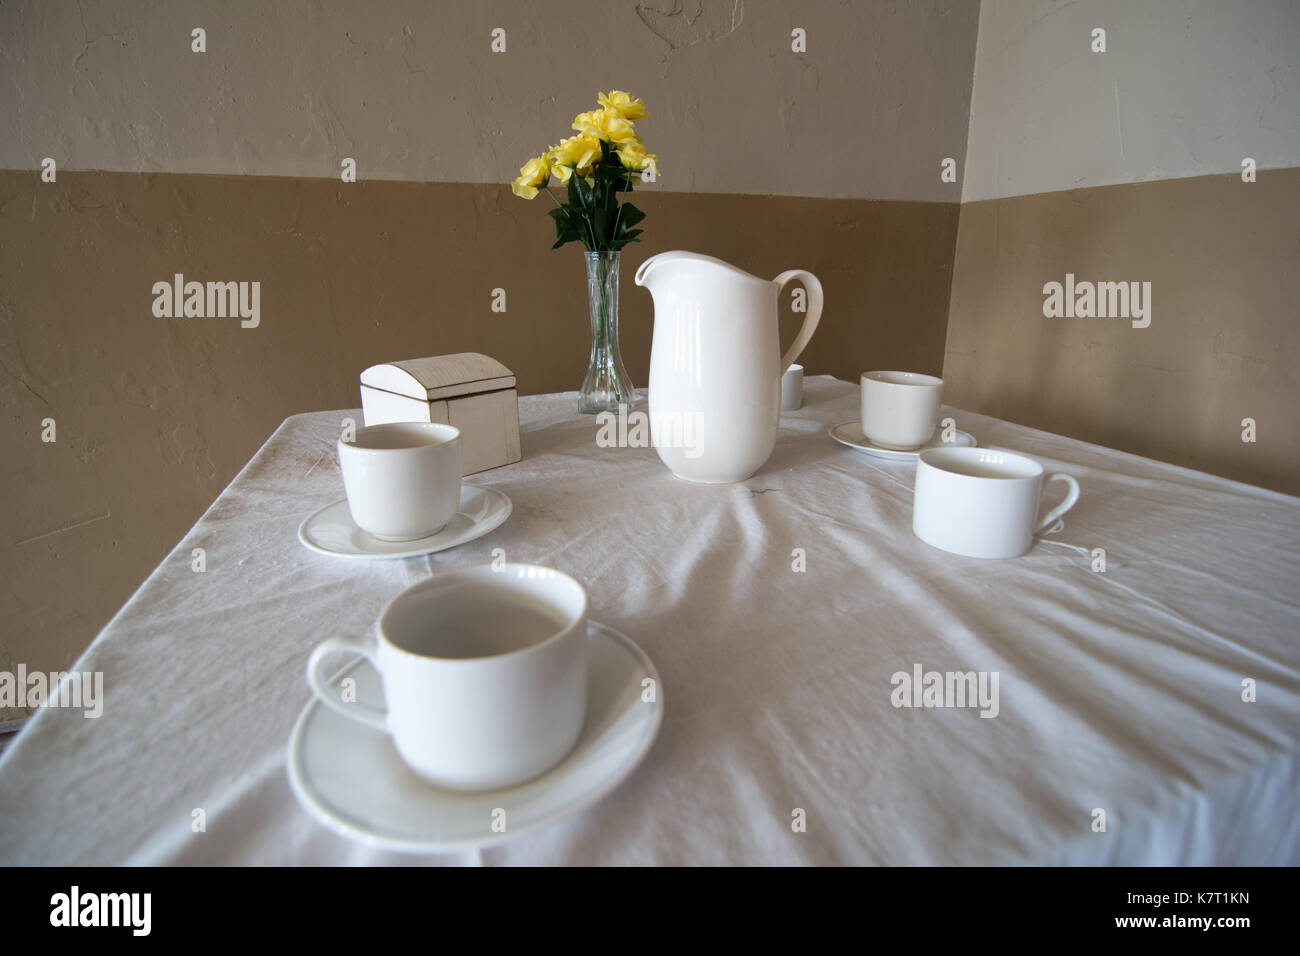 A table setting recreating a scene from the movie 'Shawshank Redemption' that was filmed at the Ohio State Reformatory, Mansfield, Ohio, USA. - Stock Image